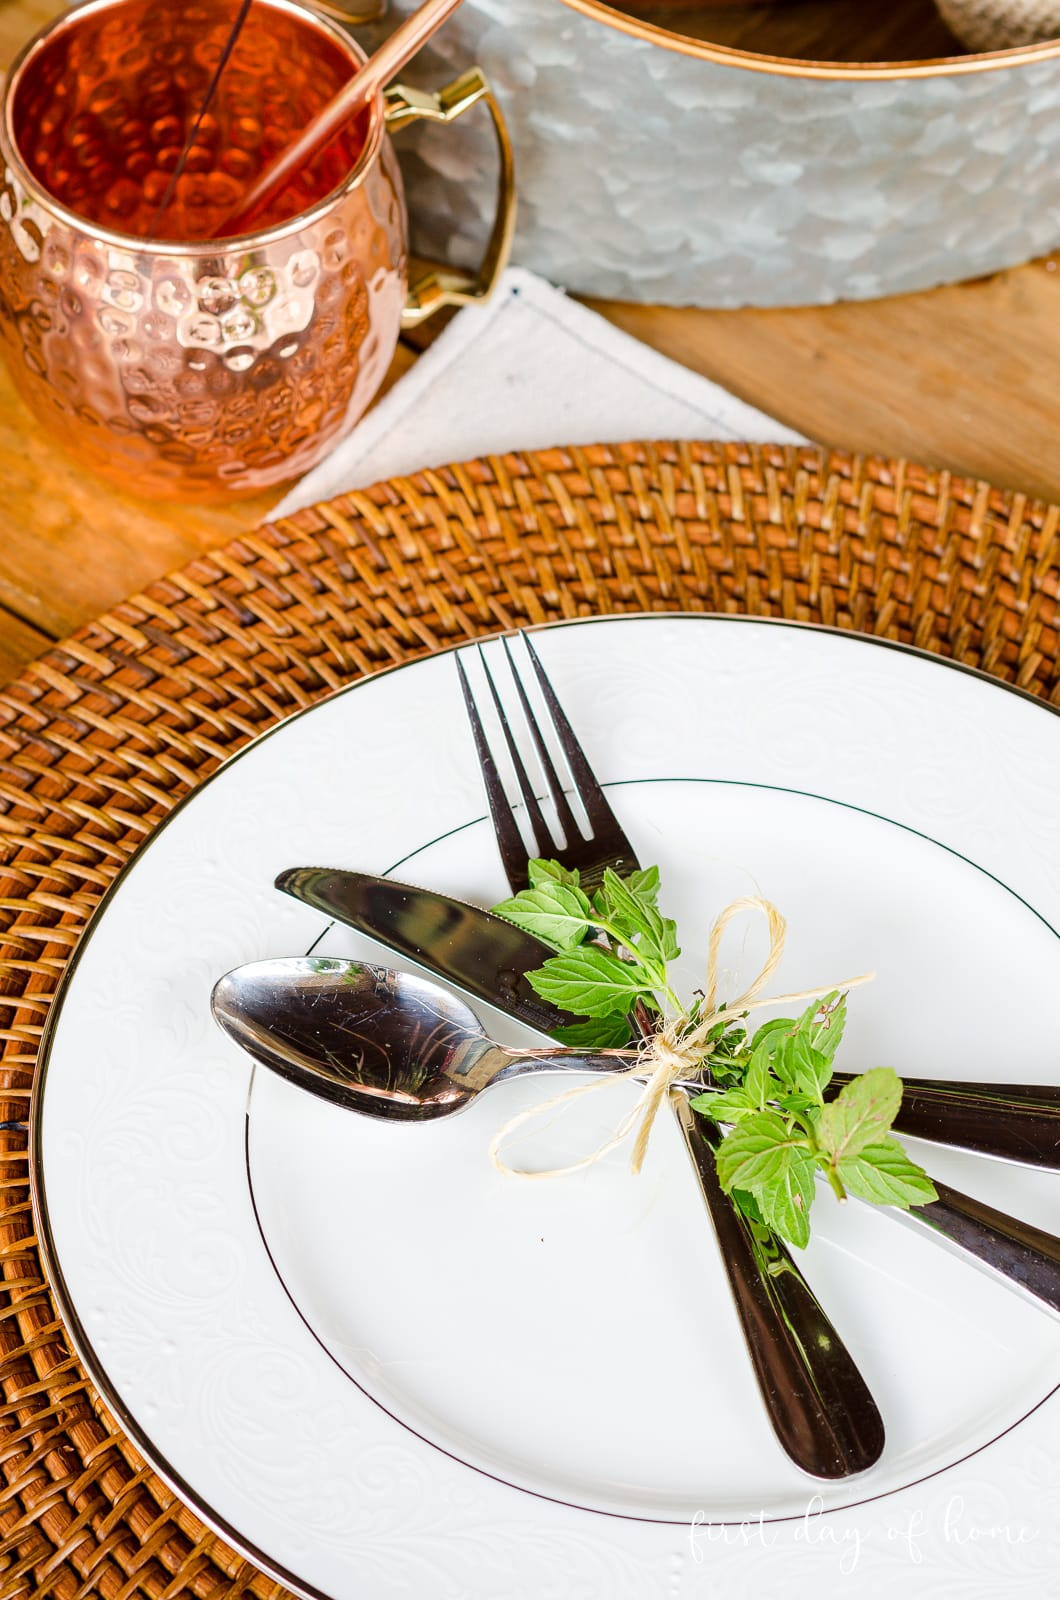 Flatware on fall outdoor tablescape with fresh mint and jute twine on plate